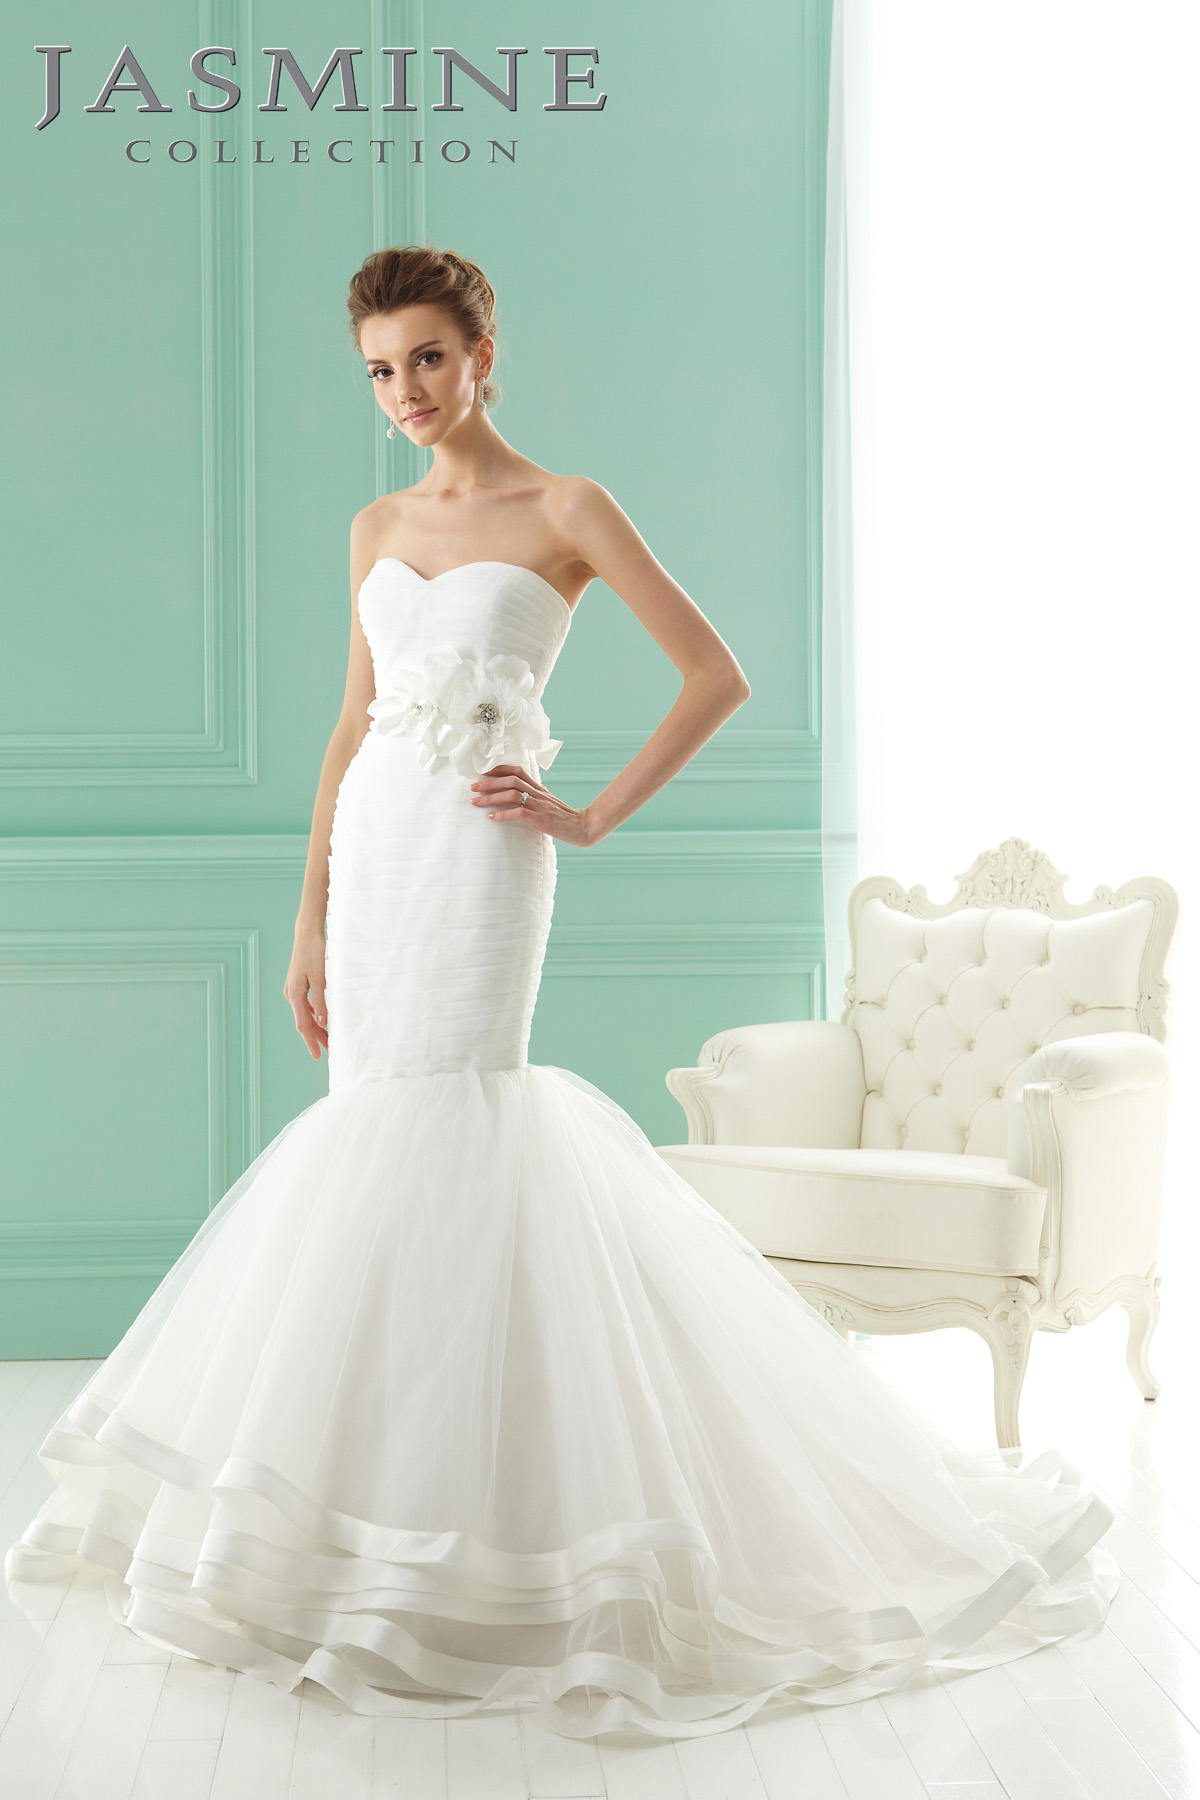 Jasmine Bridal Wedding Gowns